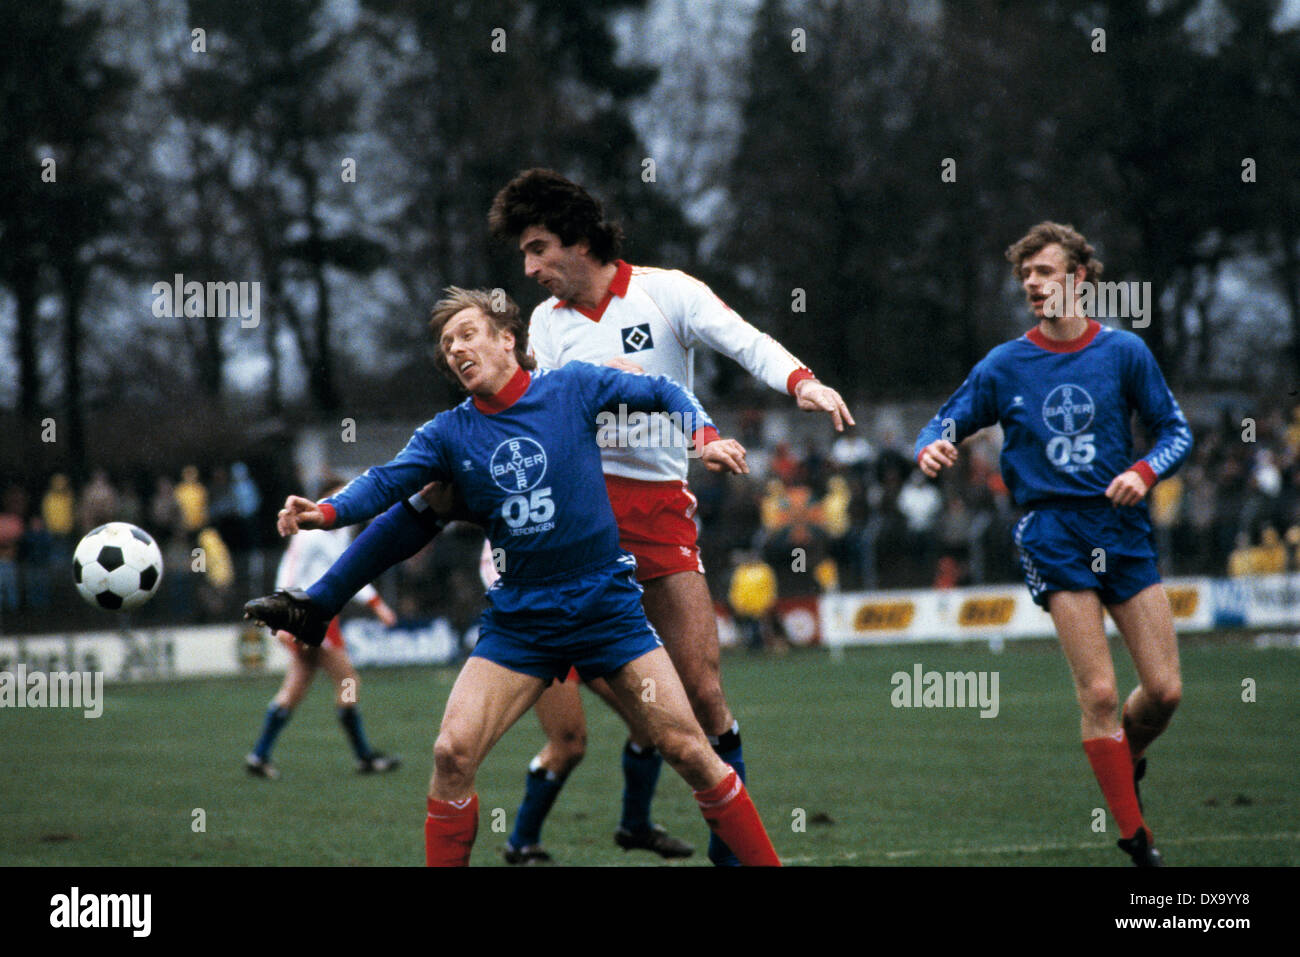 football, Bundesliga, 1980/1981, Grotenburg Stadium, FC Bayer 05 Uerdingen versus Hamburger SV 0:3, scene of the match, f.l.t.r. Siegfried Held (Bayer), Ivan Buljan (HSV), Ludger Kanders (Bayer) - Stock Image